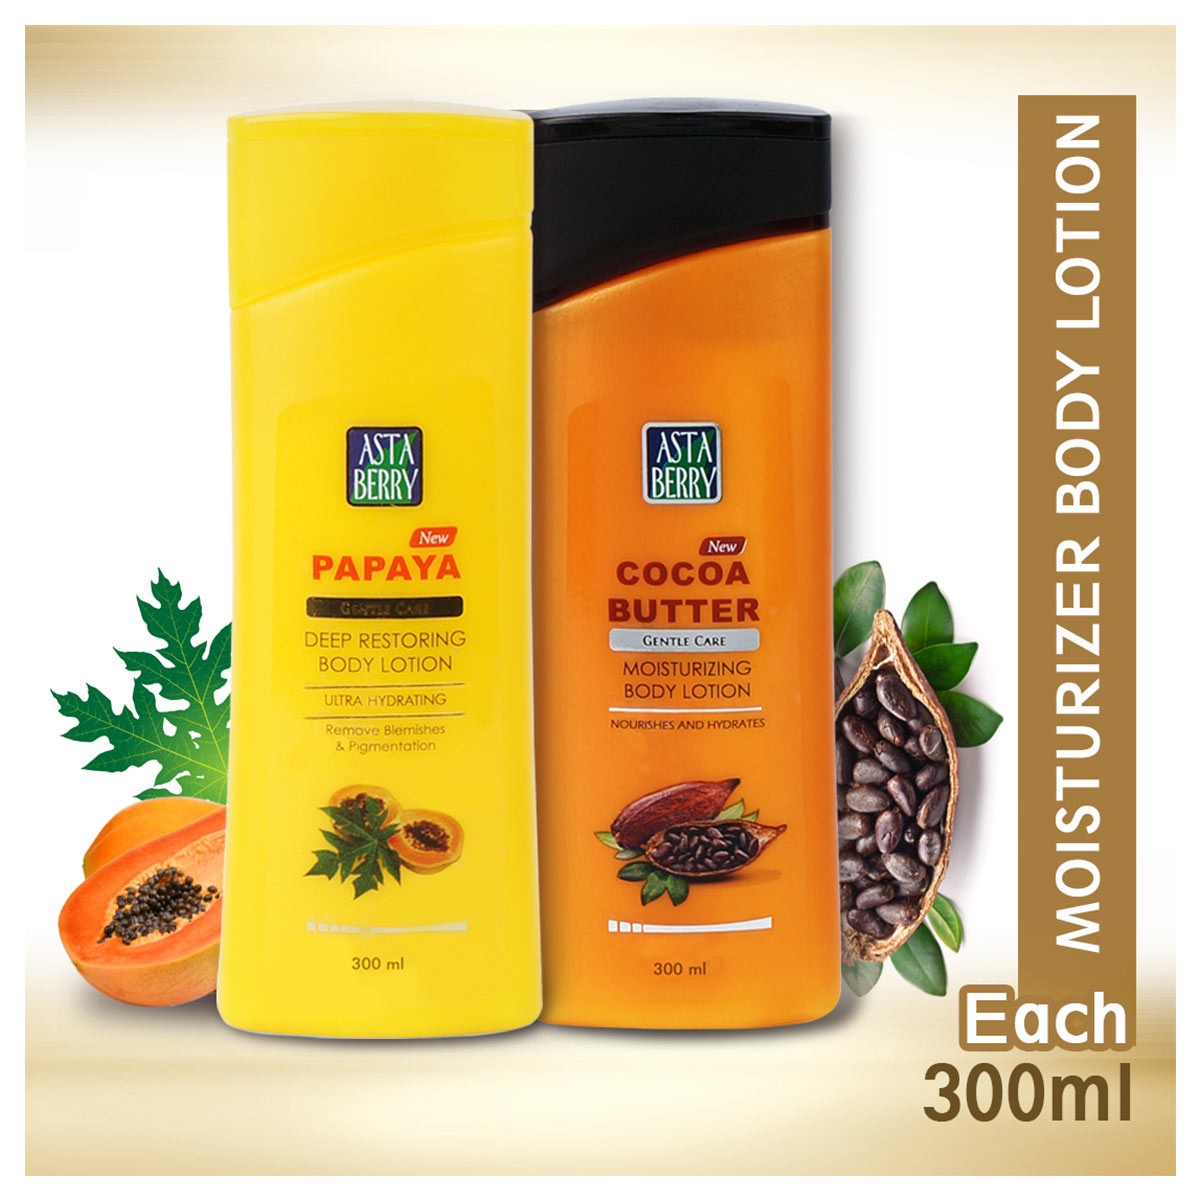 Astaberry Body Lotion Papaya & Coco Butter (pack 2) 300ml